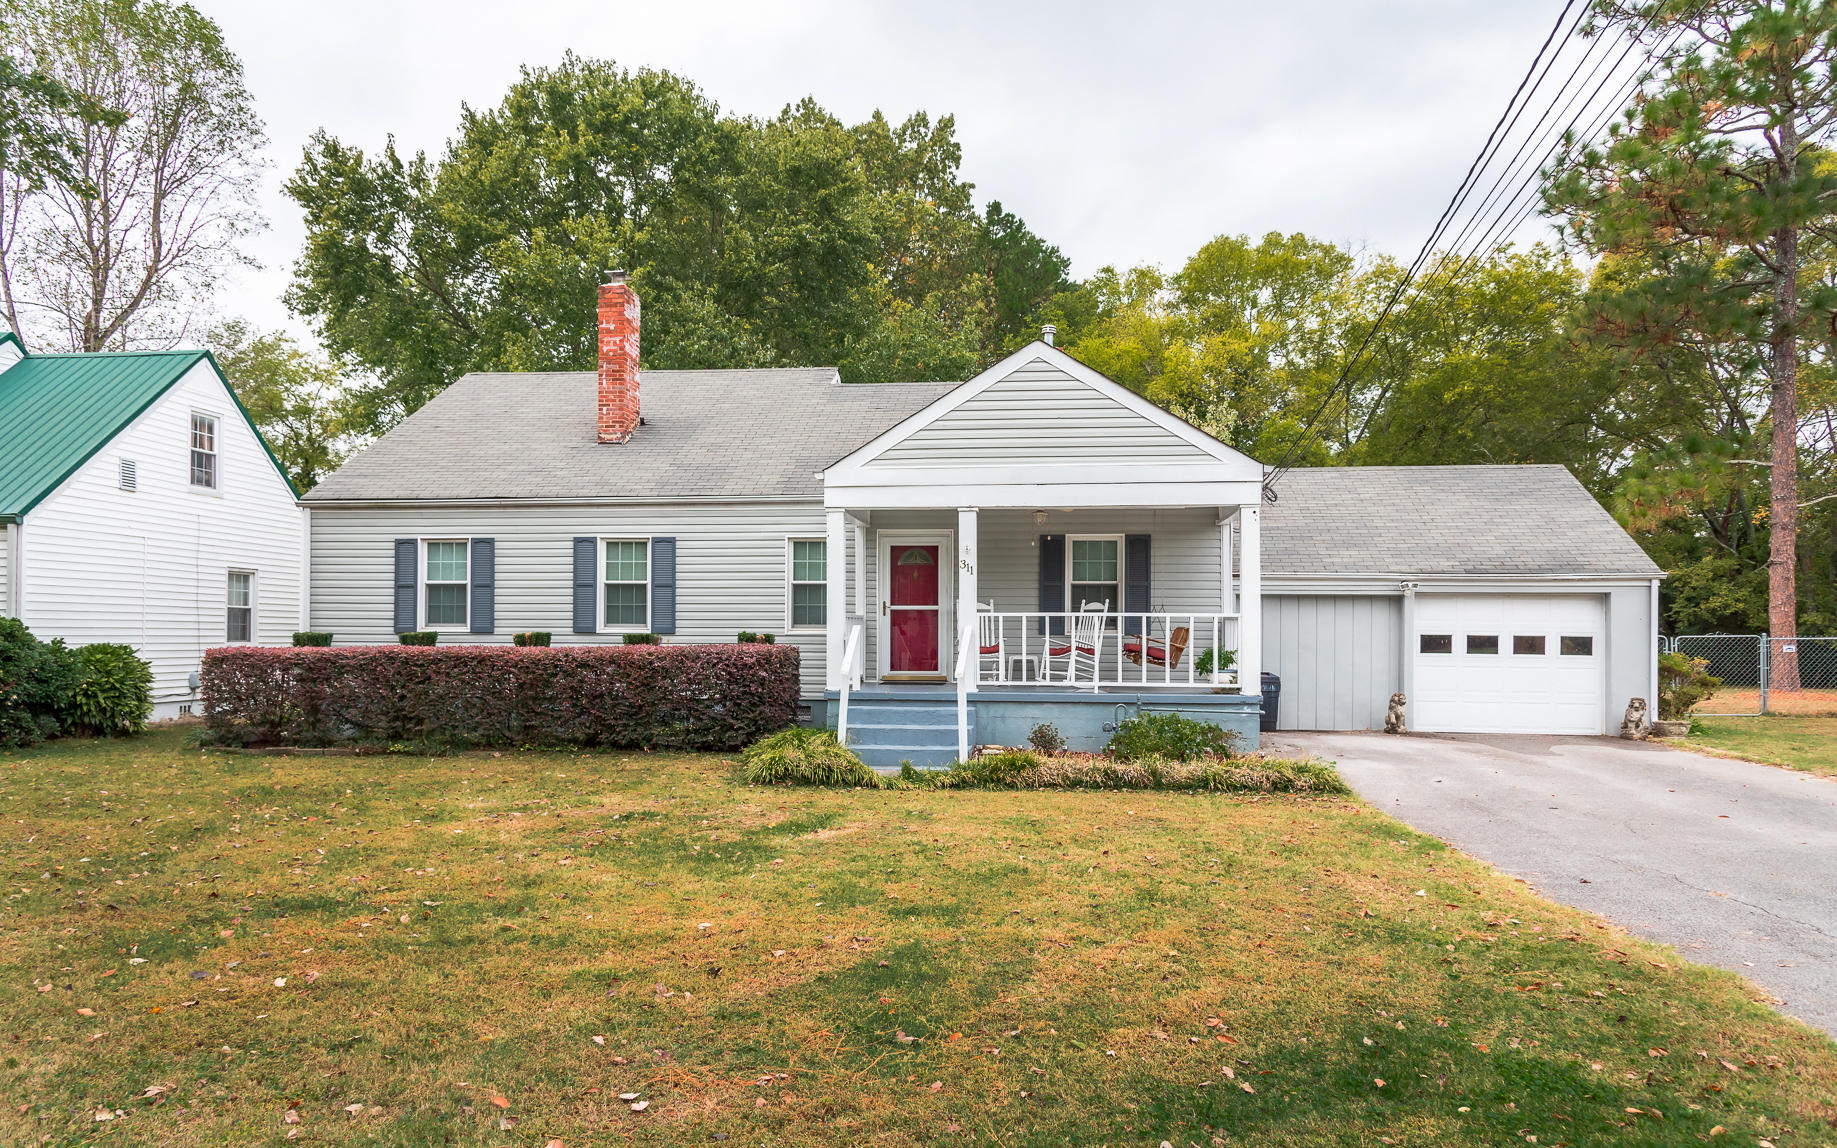 311 N Howell Ave, Chattanooga, TN 37411